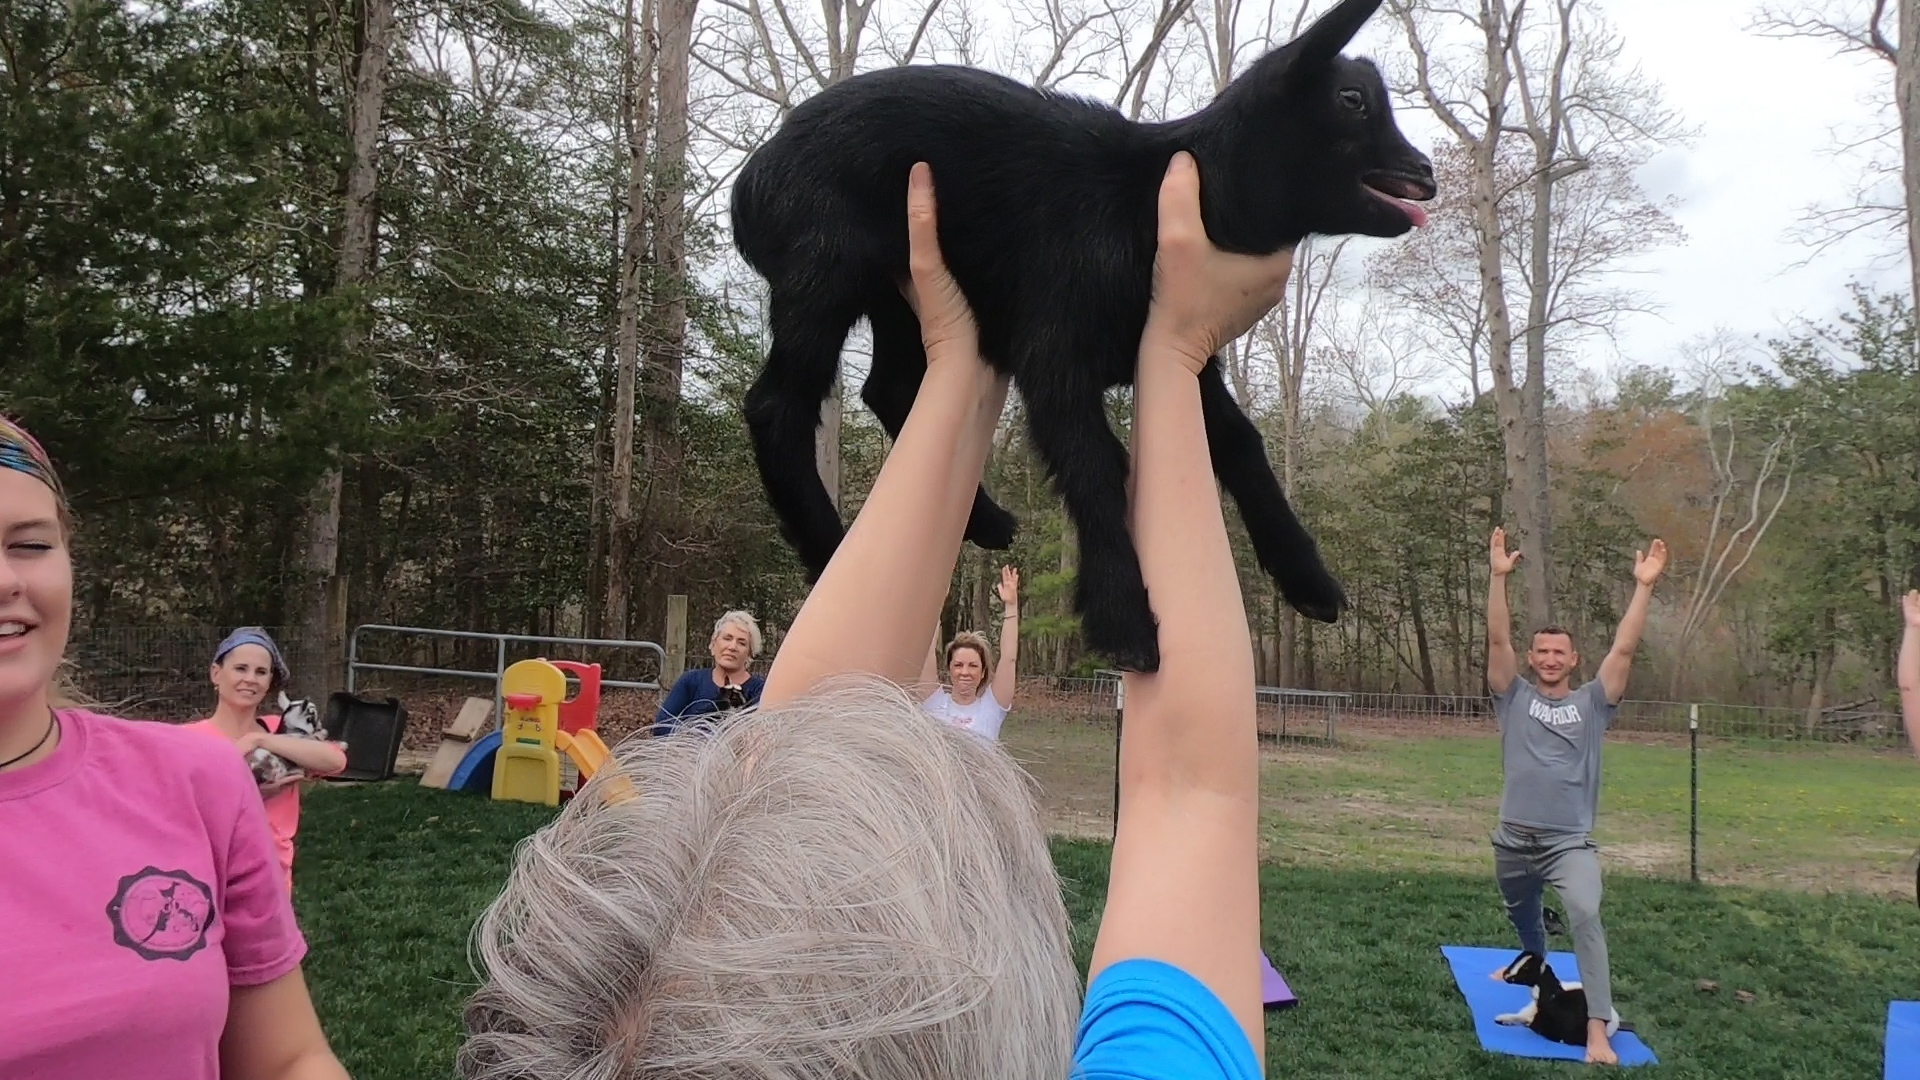 Goat Yoga! WBOC Sports' Jose Cuevas takes a Look at the Growing Phenomenon